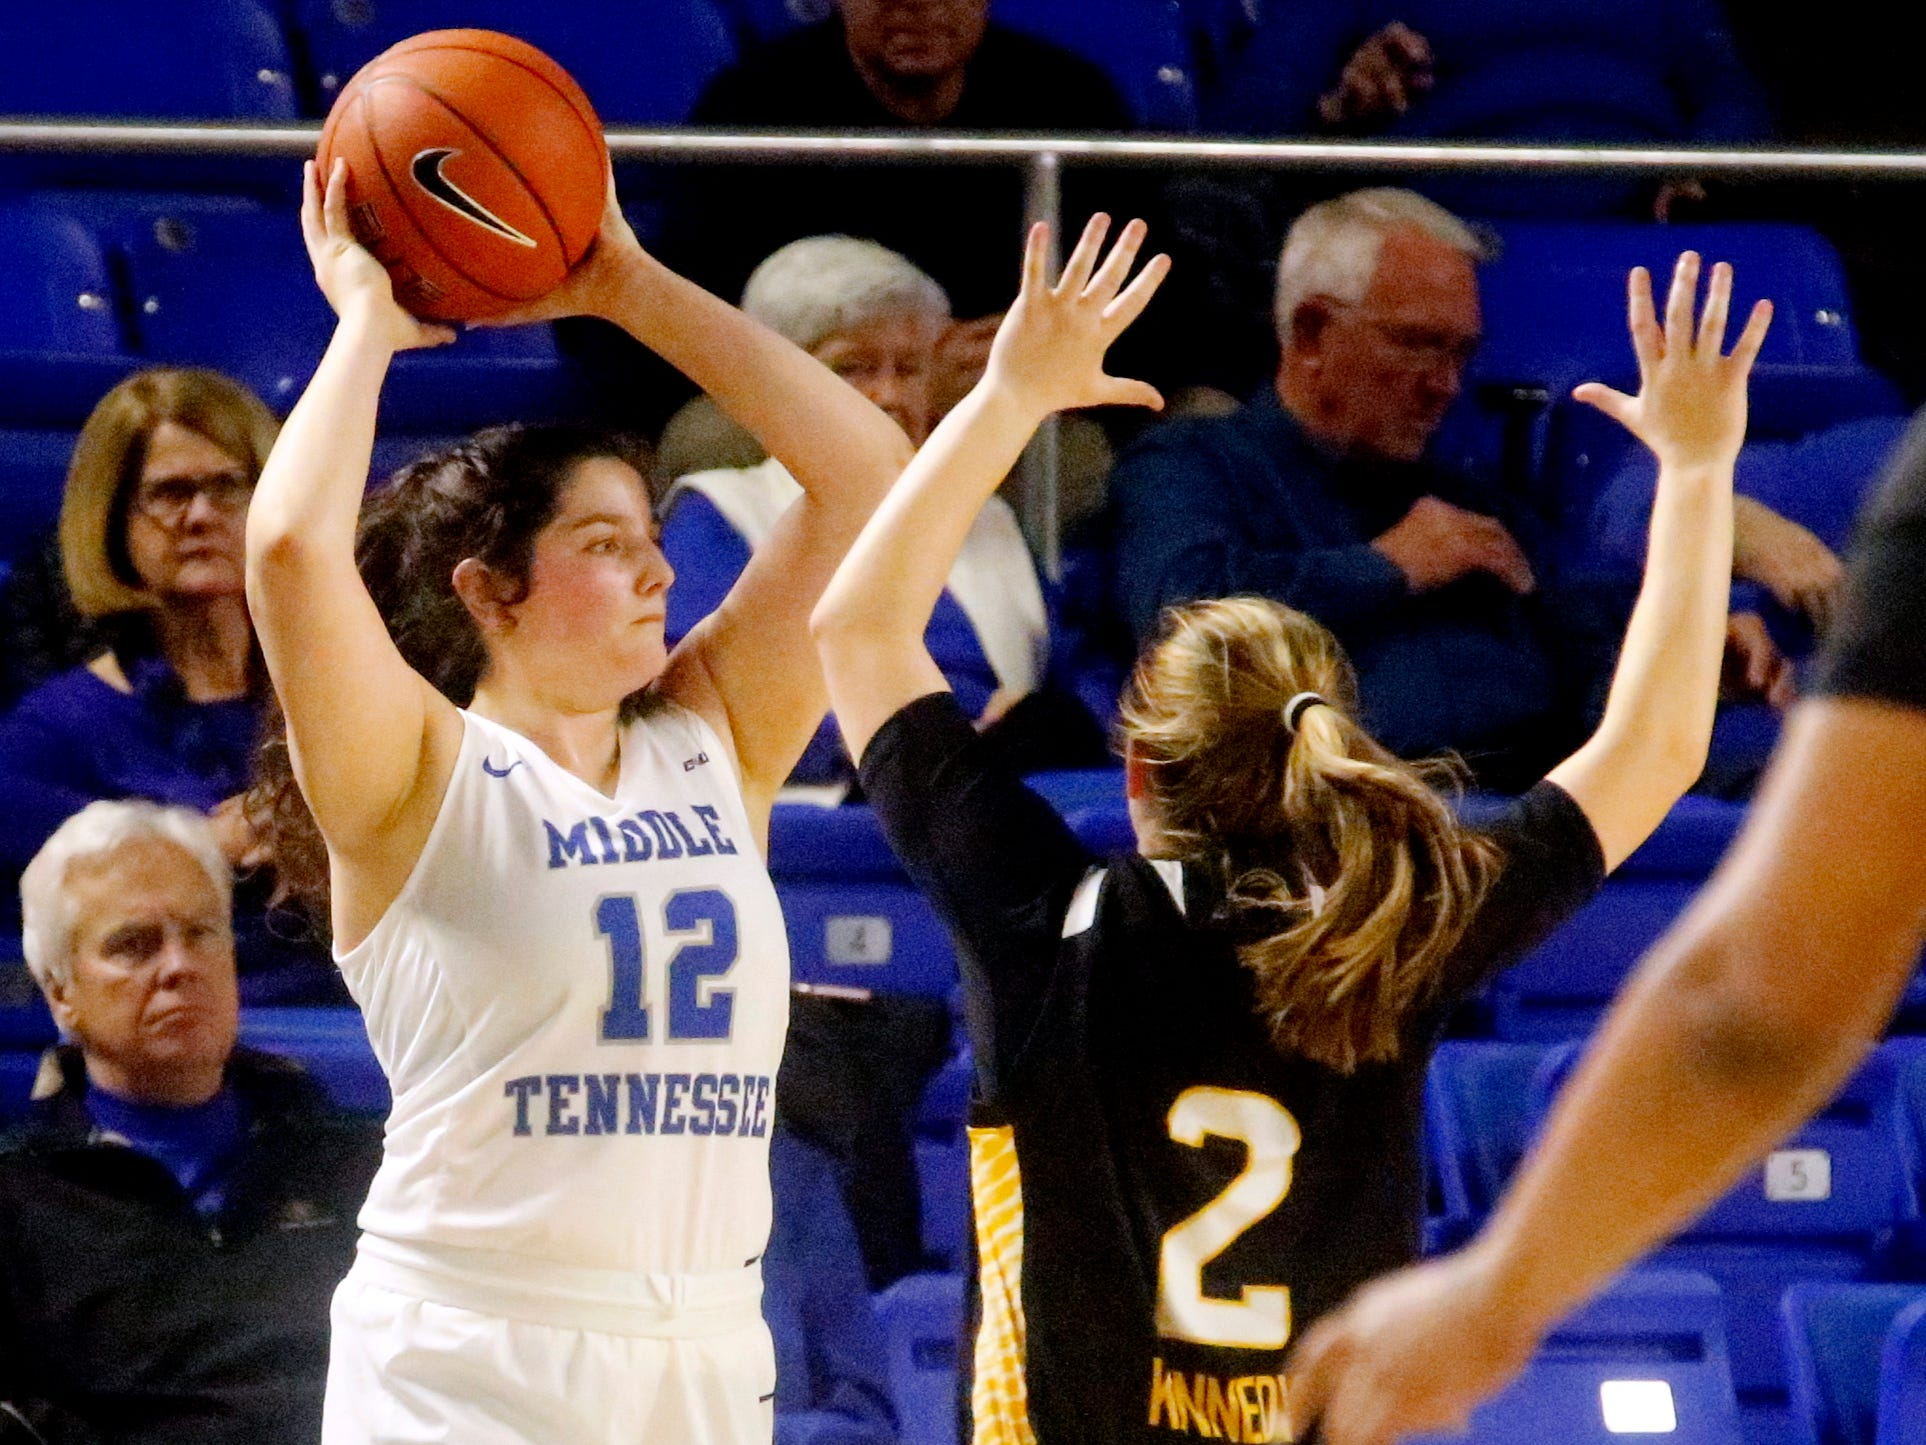 MTSU's guard Jess Louro (12) looks to pass the ball as she is covered by Southern Miss' Allie Kennedy (2), on Thursday Jan. 10, 2019.